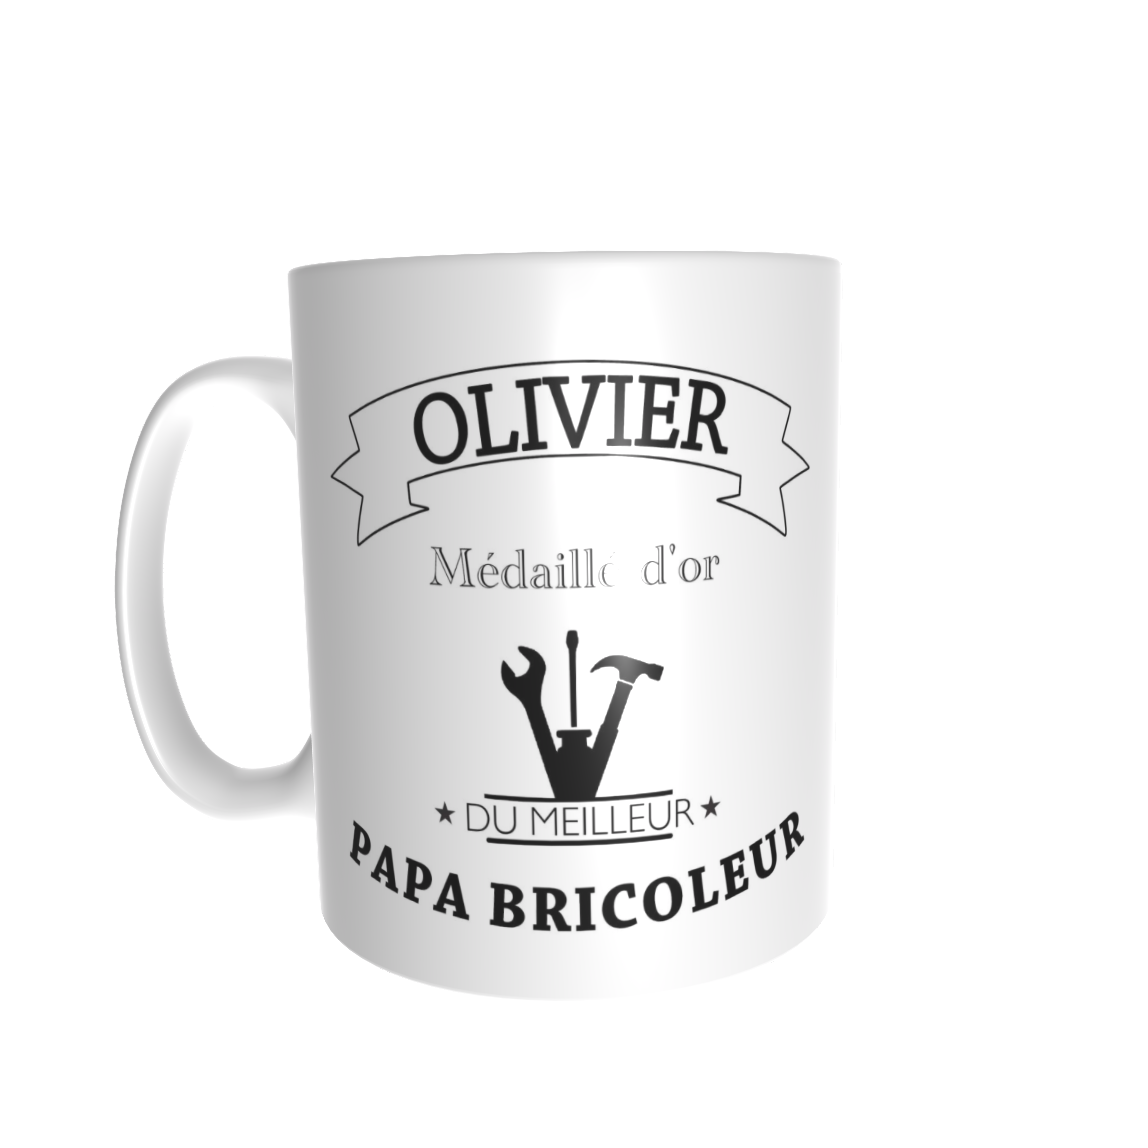 mug personnalis pr nom pour un papa bricoleur la petite boutique clic. Black Bedroom Furniture Sets. Home Design Ideas